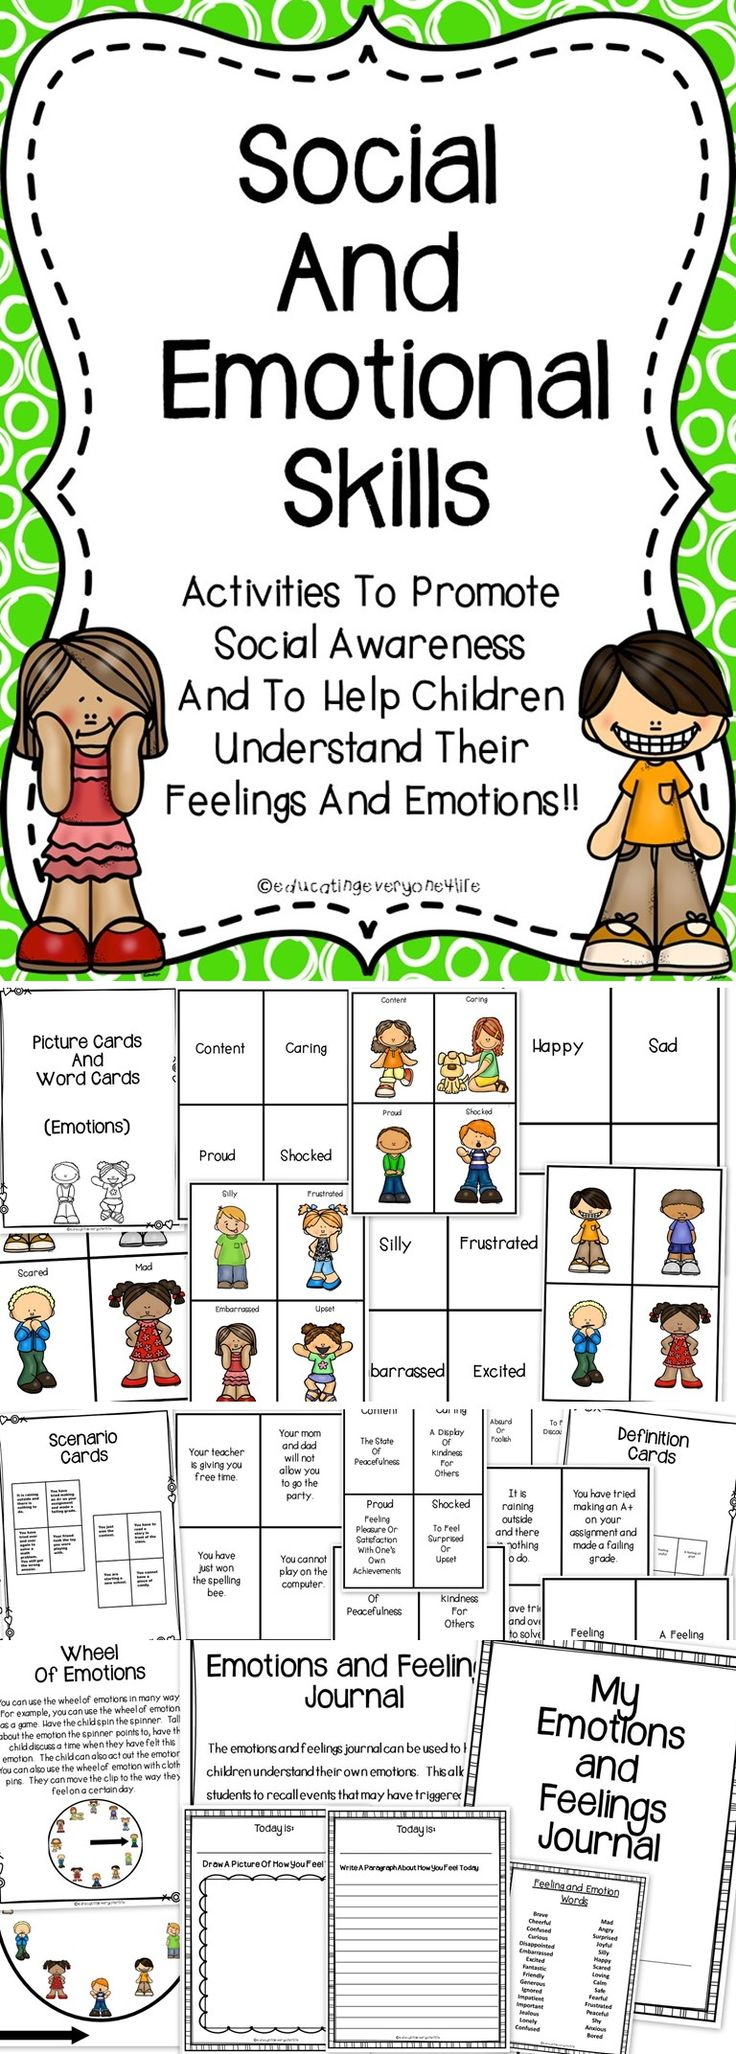 Social and Emotional Skills - This is a supplemental activity book to use with children when teaching them social skills and about their emotions. This social skills resource includes games, scenario cards, a journal, and more. #education